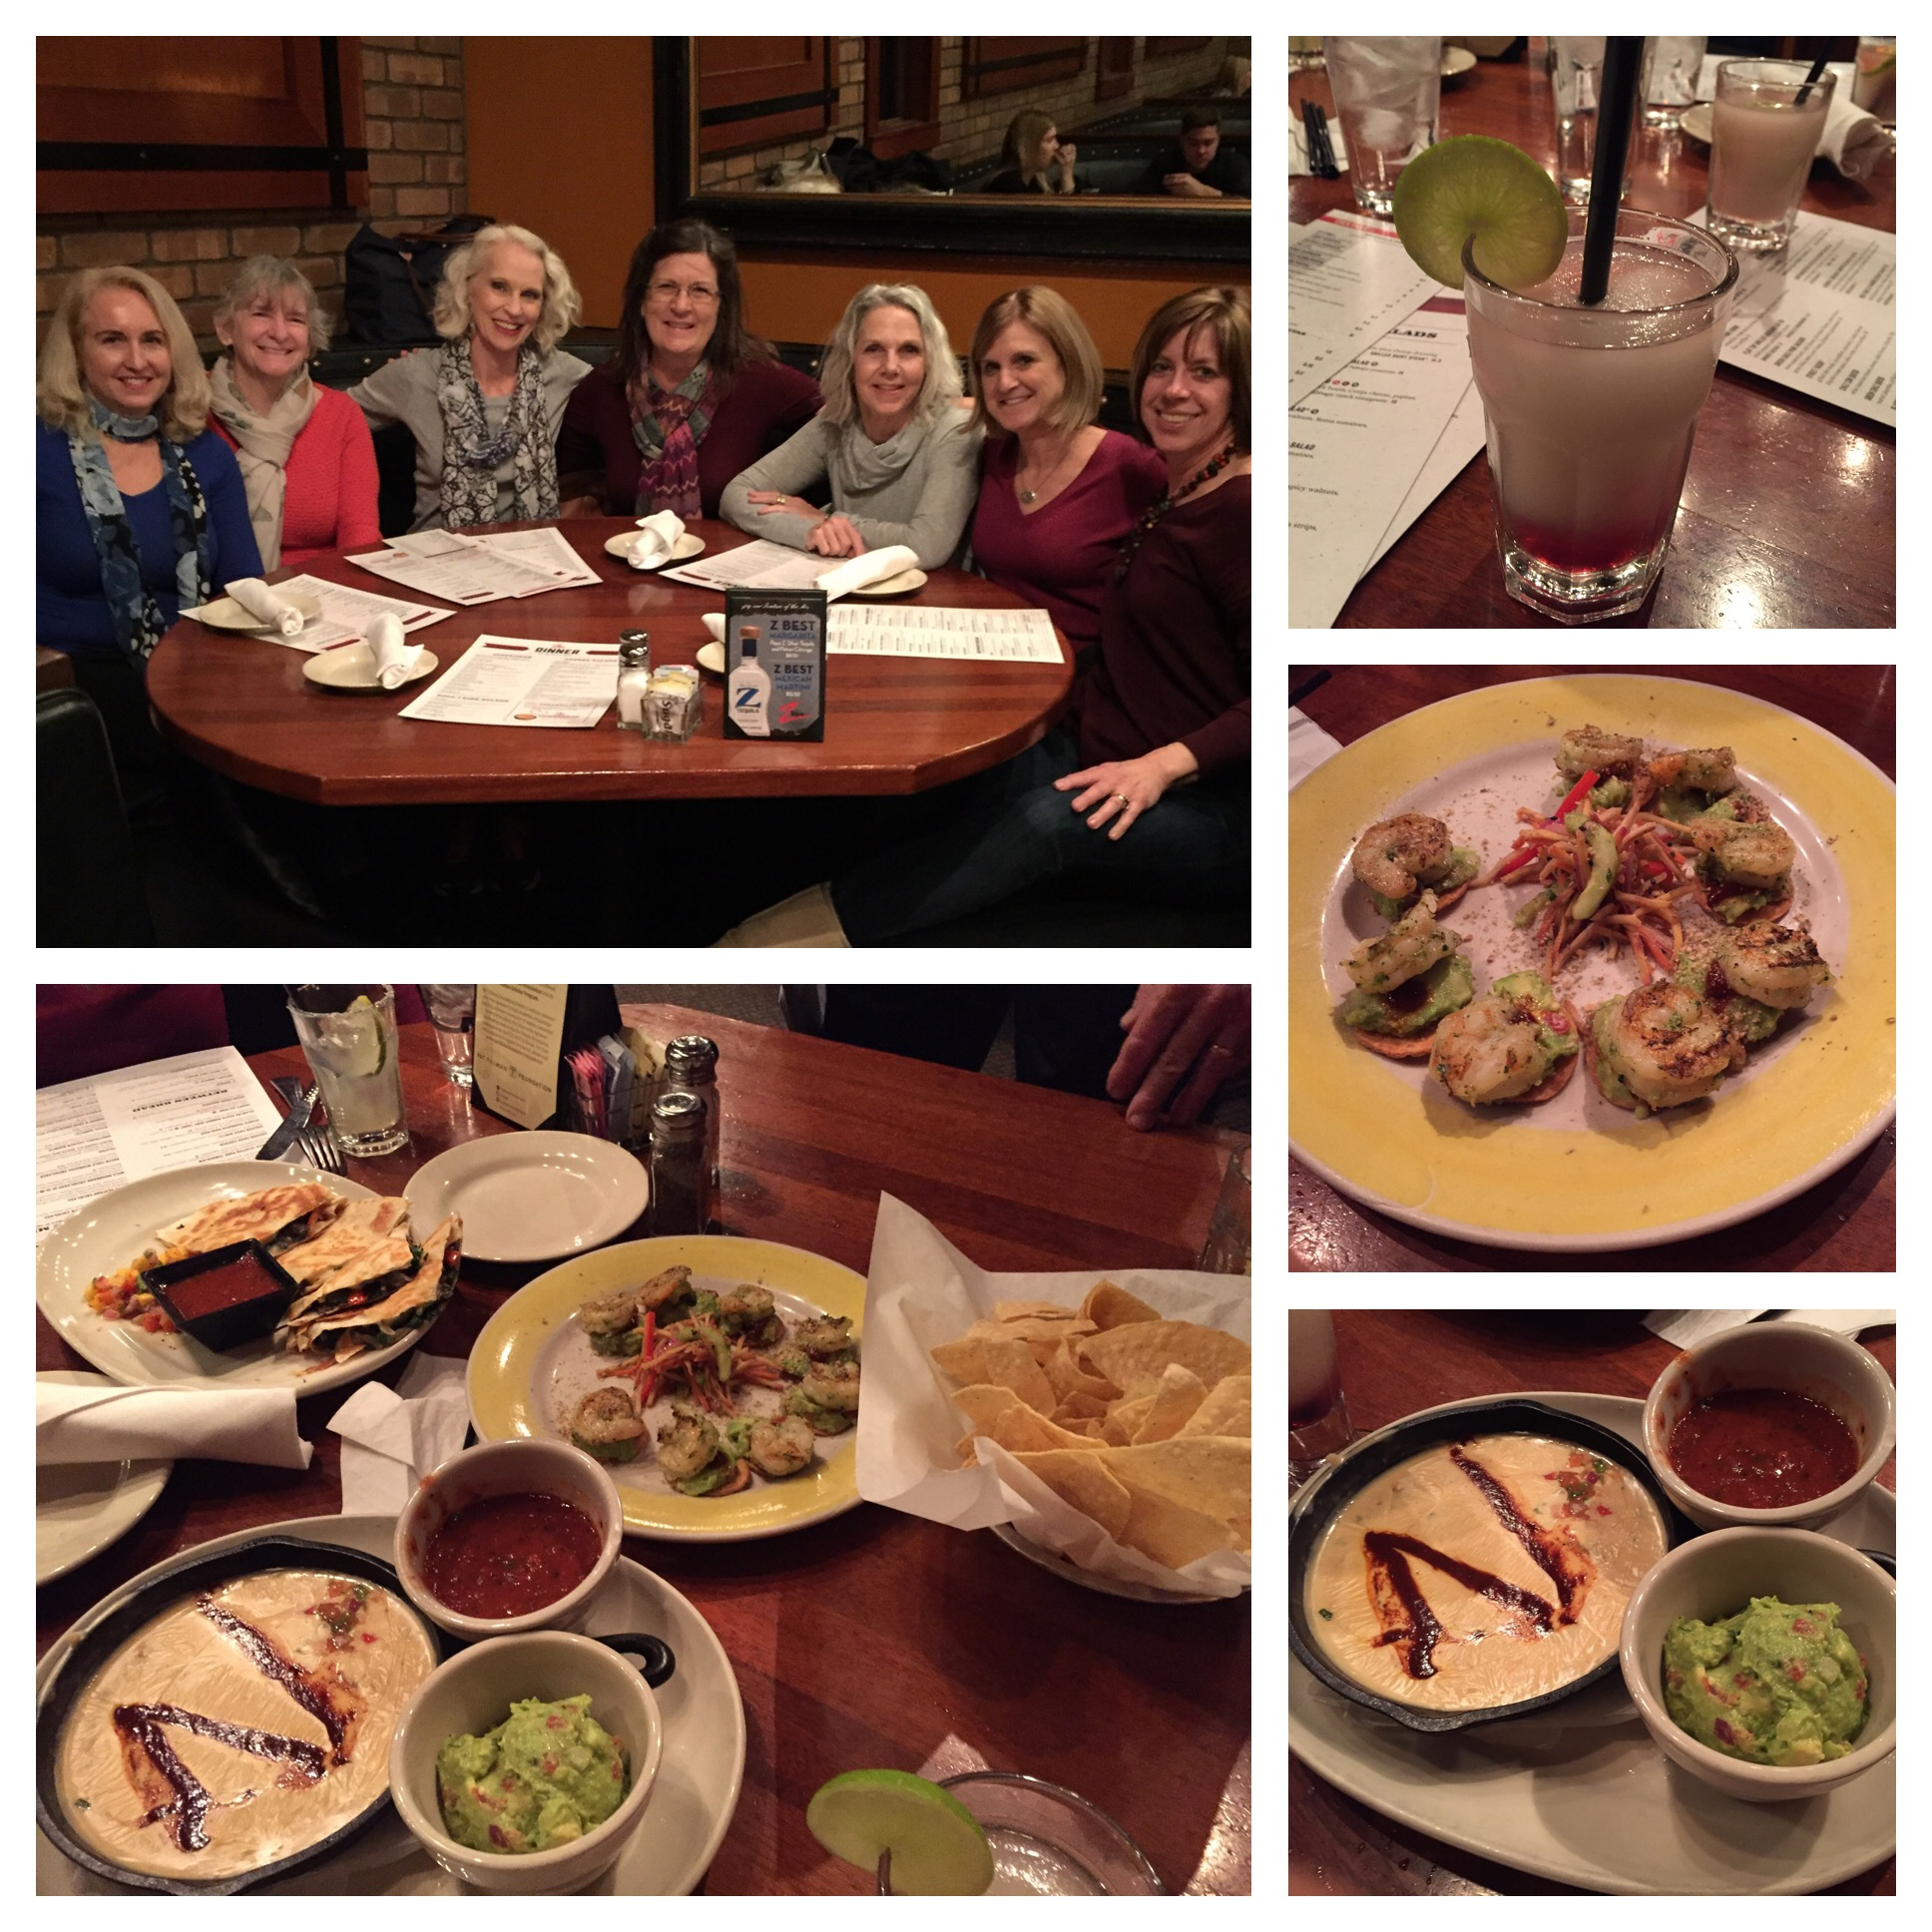 We ordered a bunch of appetizers to share and the margarita's they are famous for - all delicious!